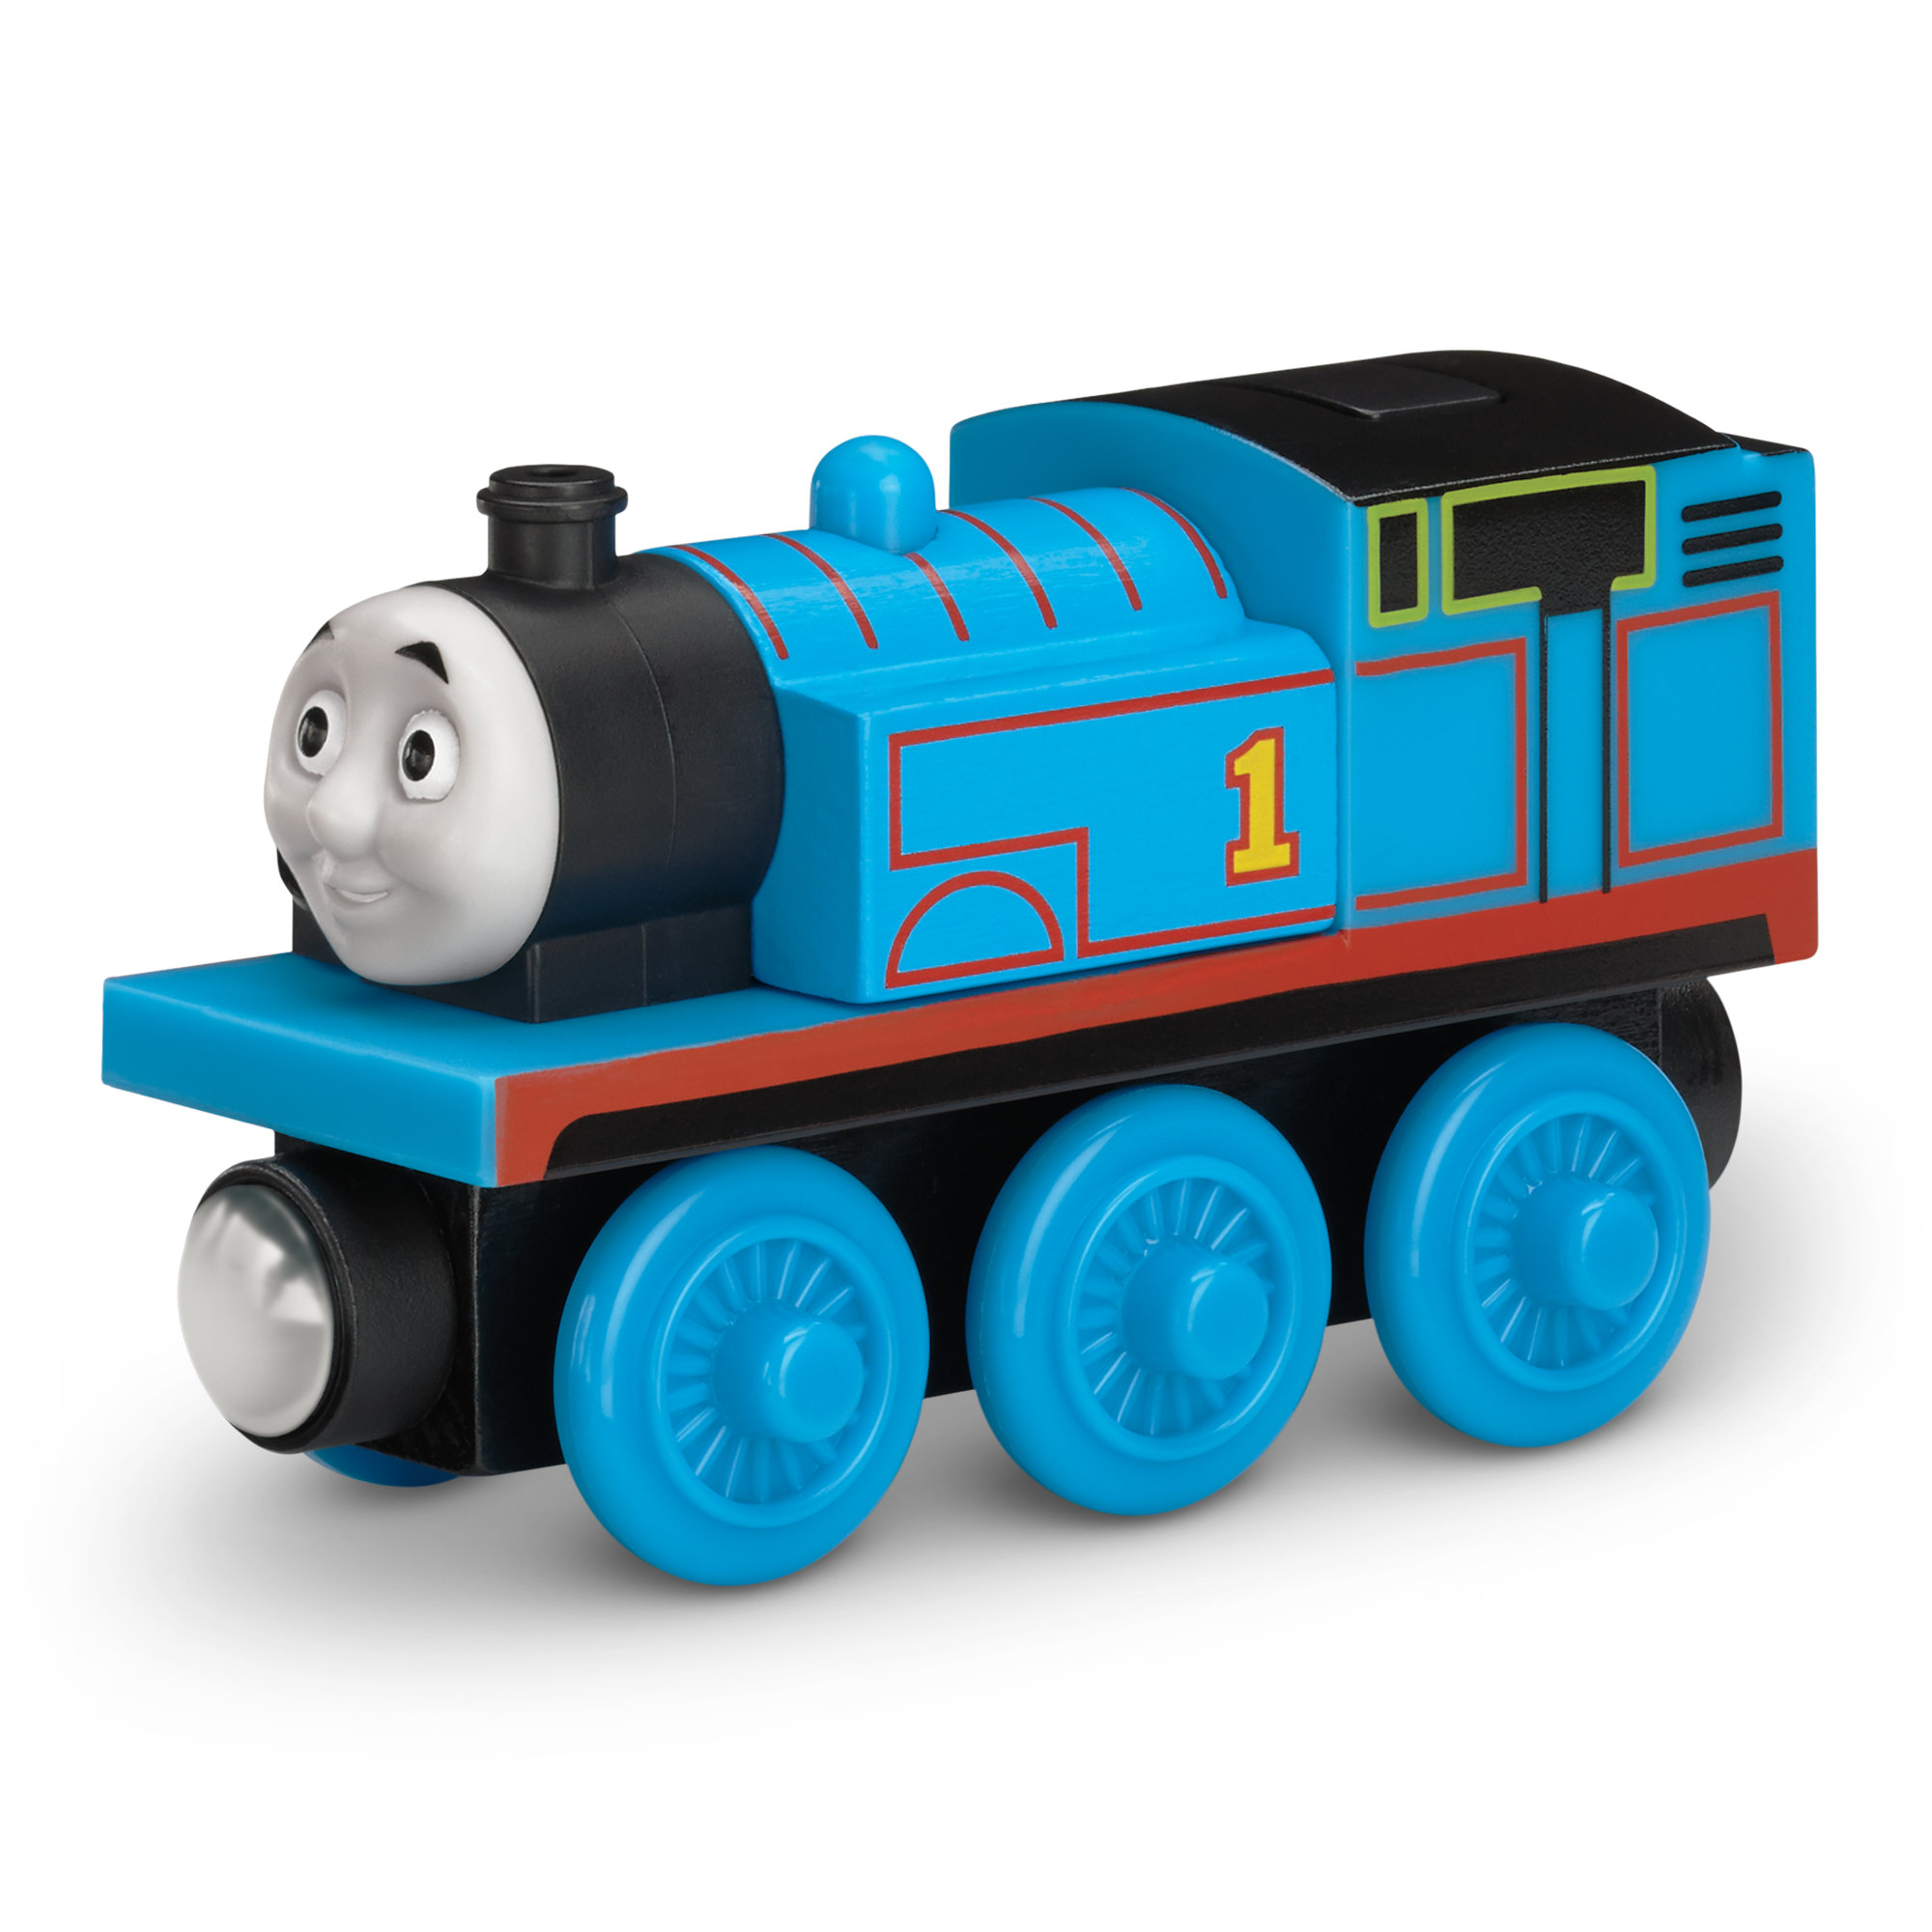 Thomas & Friends Wooden Railway, Talking Thomas